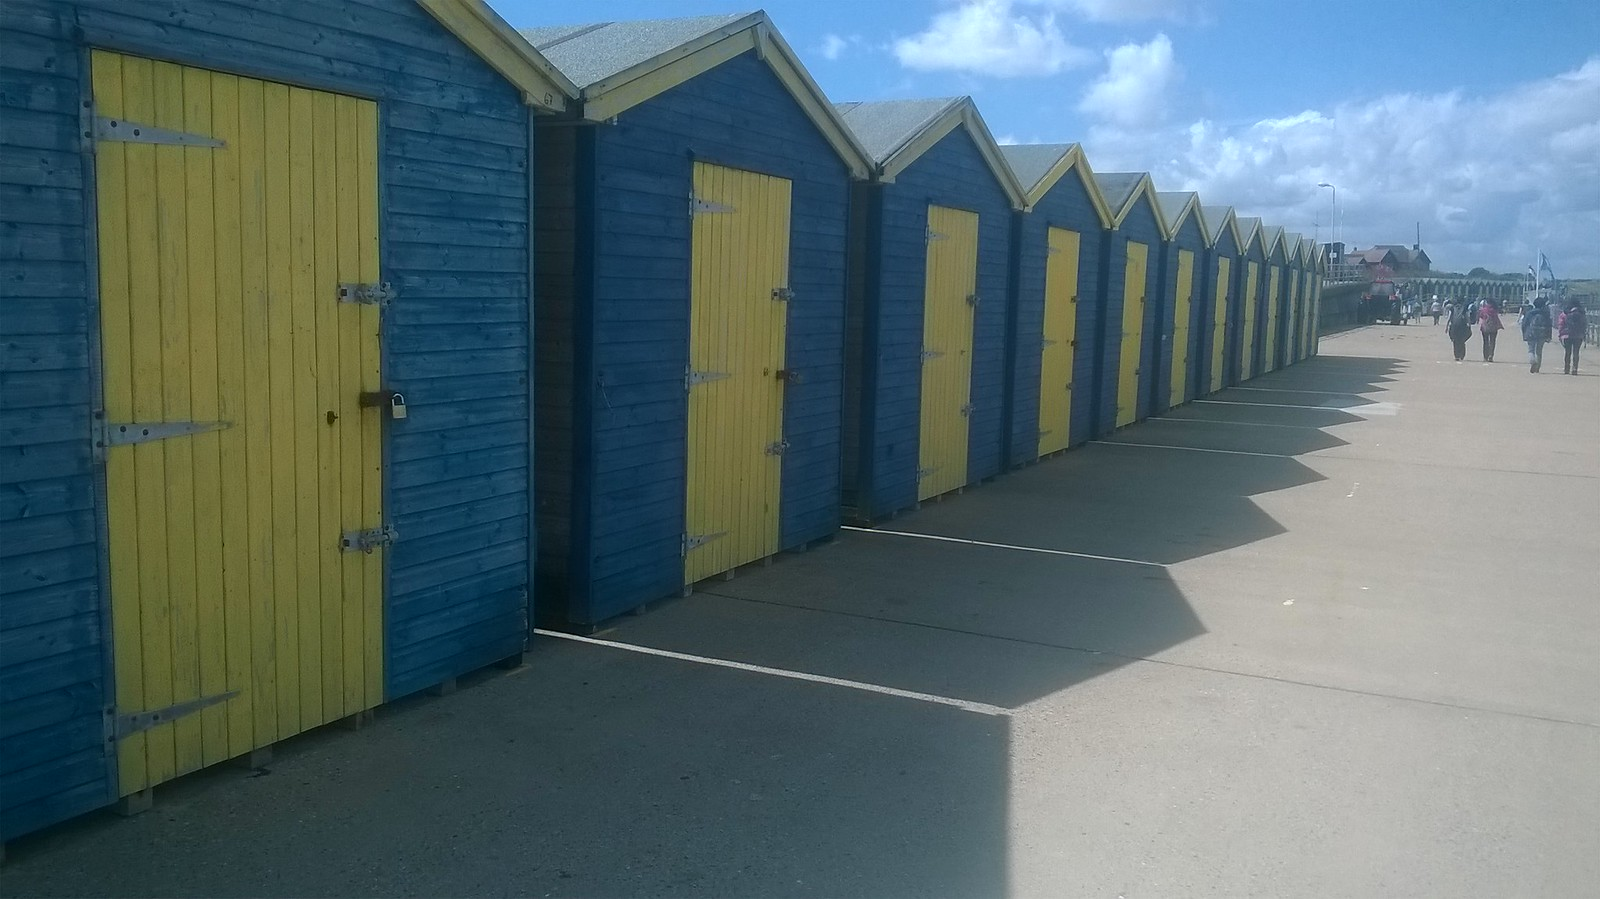 Beach huts at Birchington on Sea